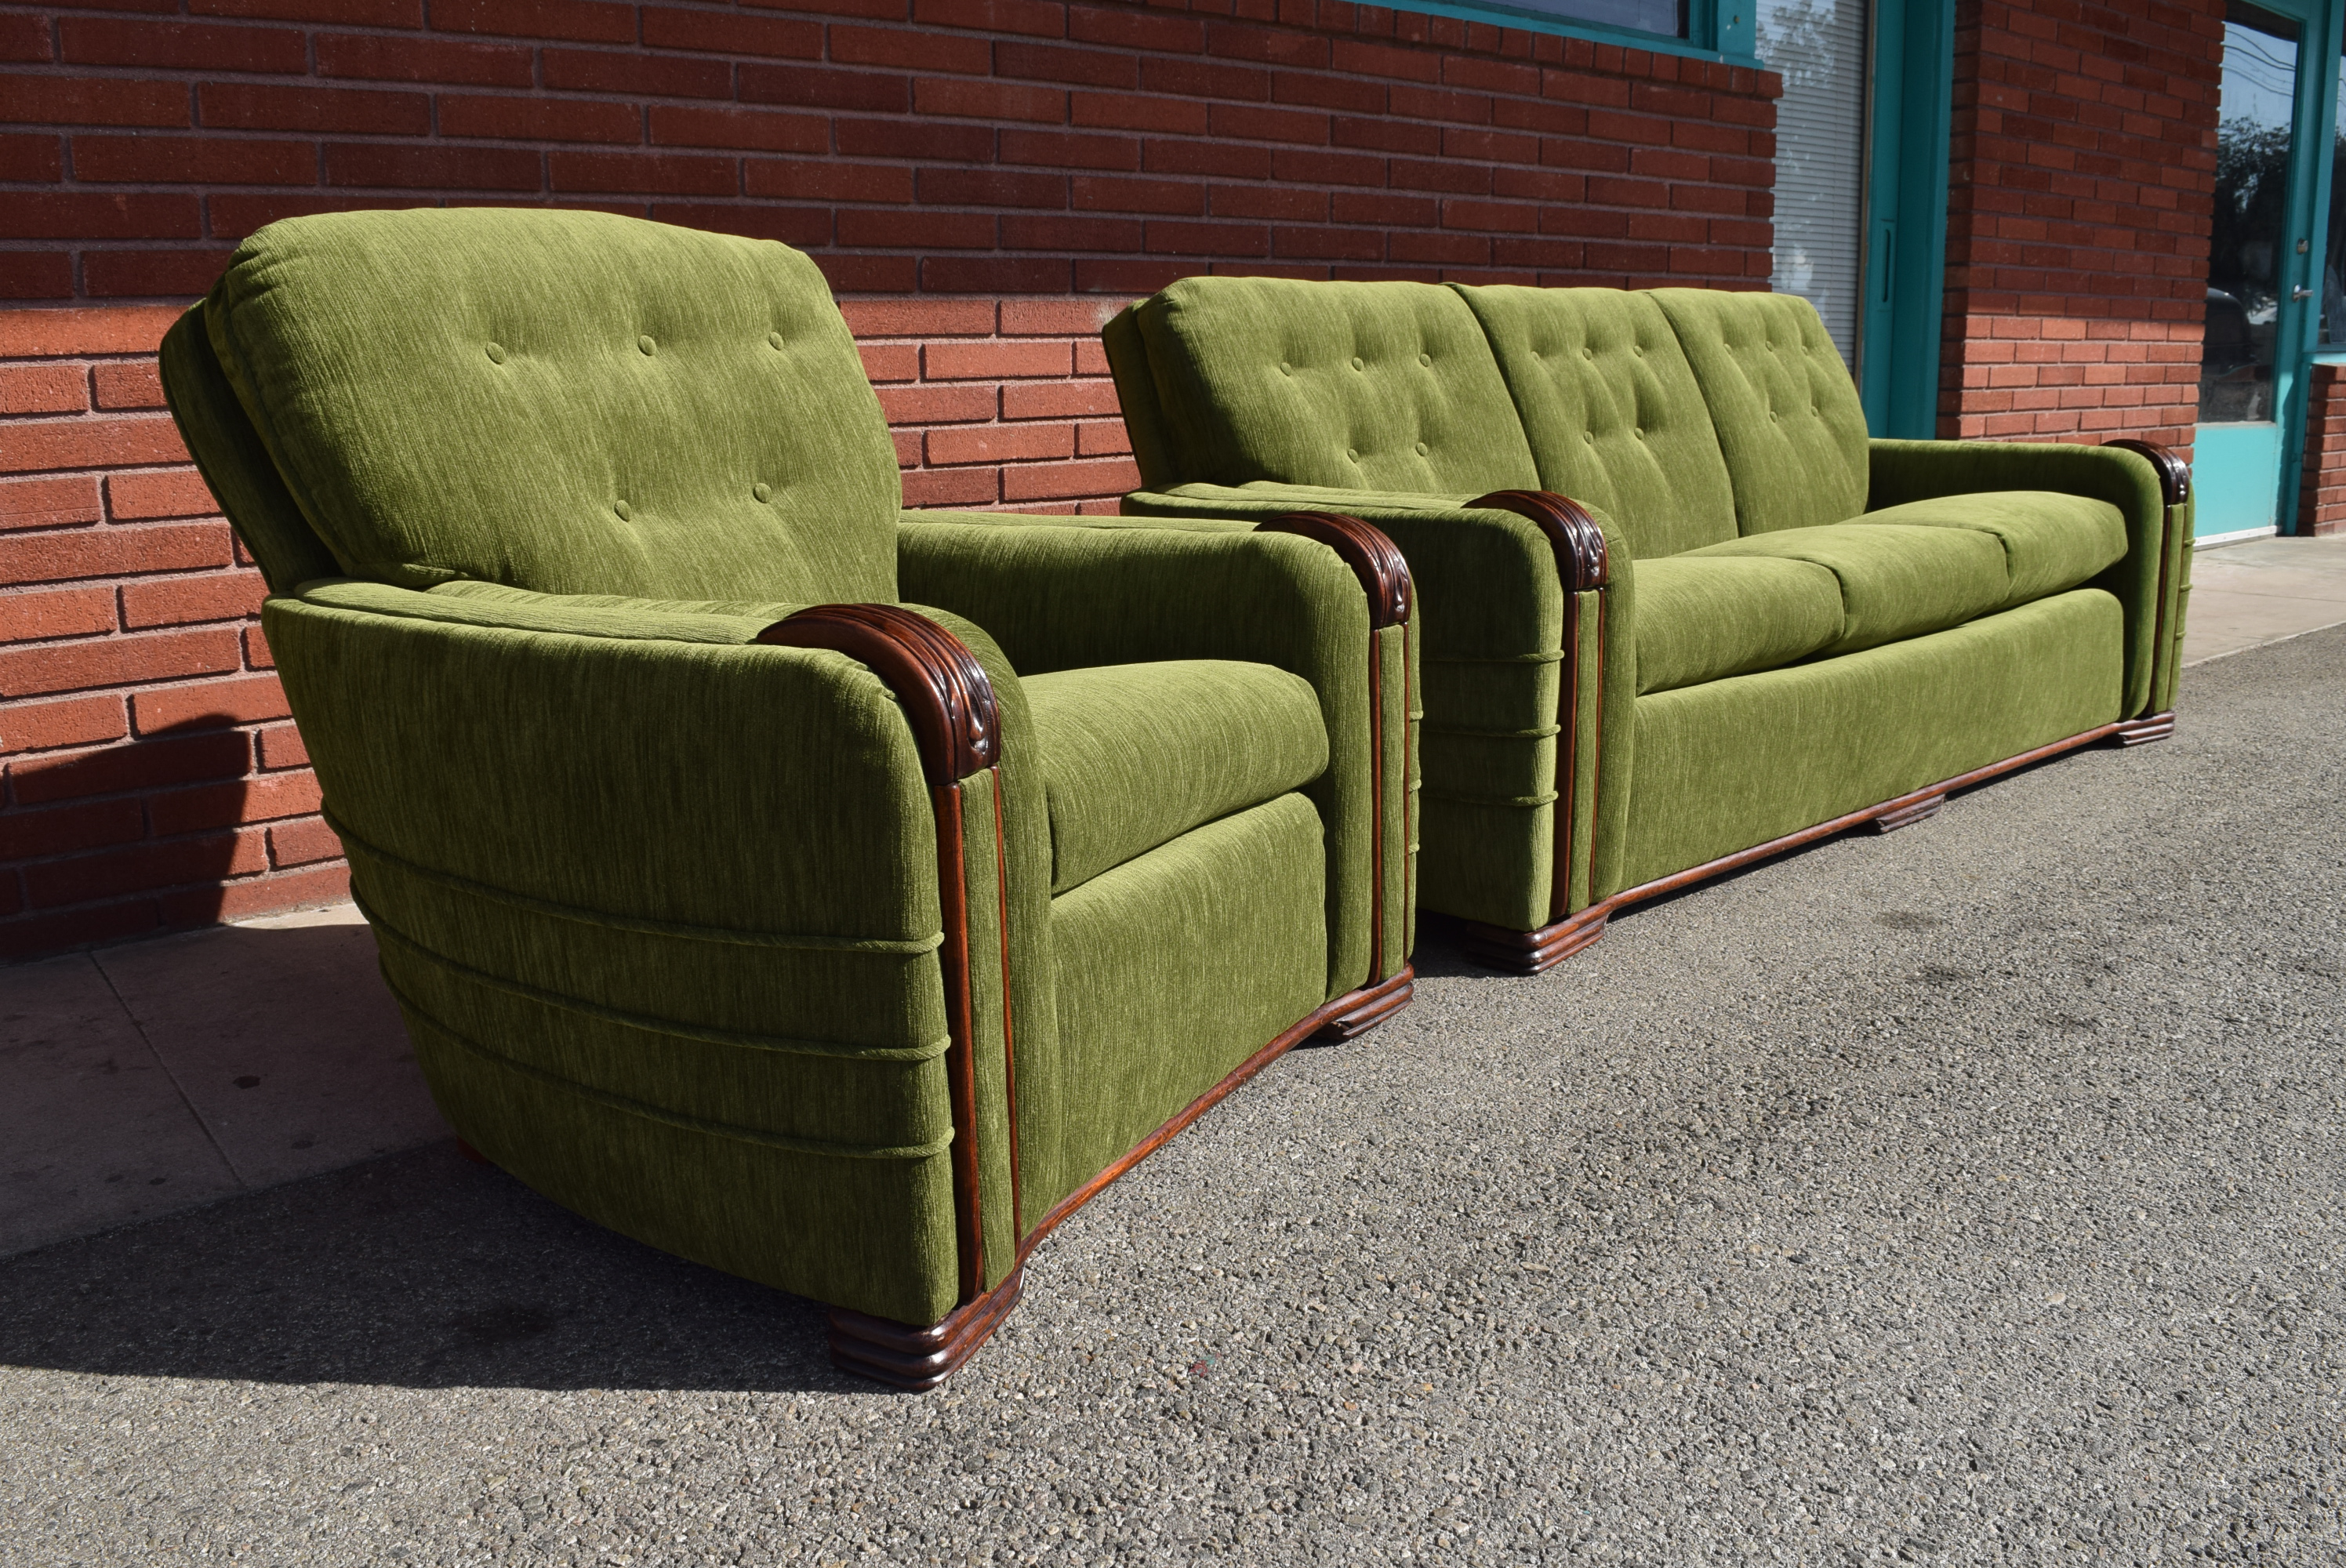 Vintage Art Deco Modern Green Velvet Sofa U0026 Chair   A Pair   Image 3 Of